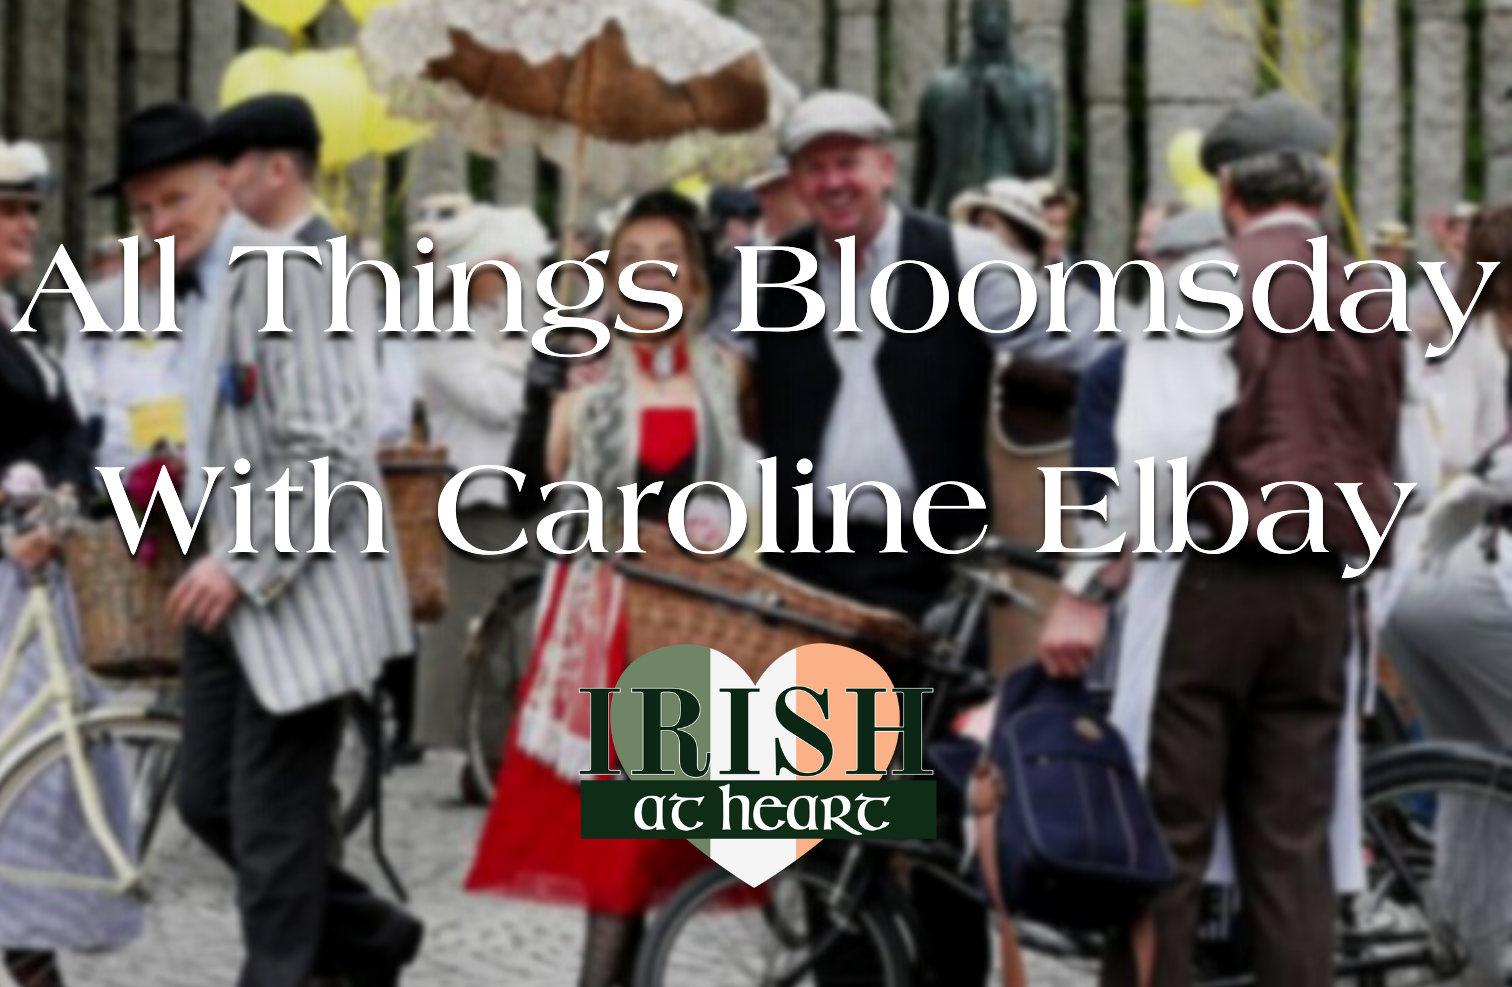 All Things Bloomsday with Caroline Elbay